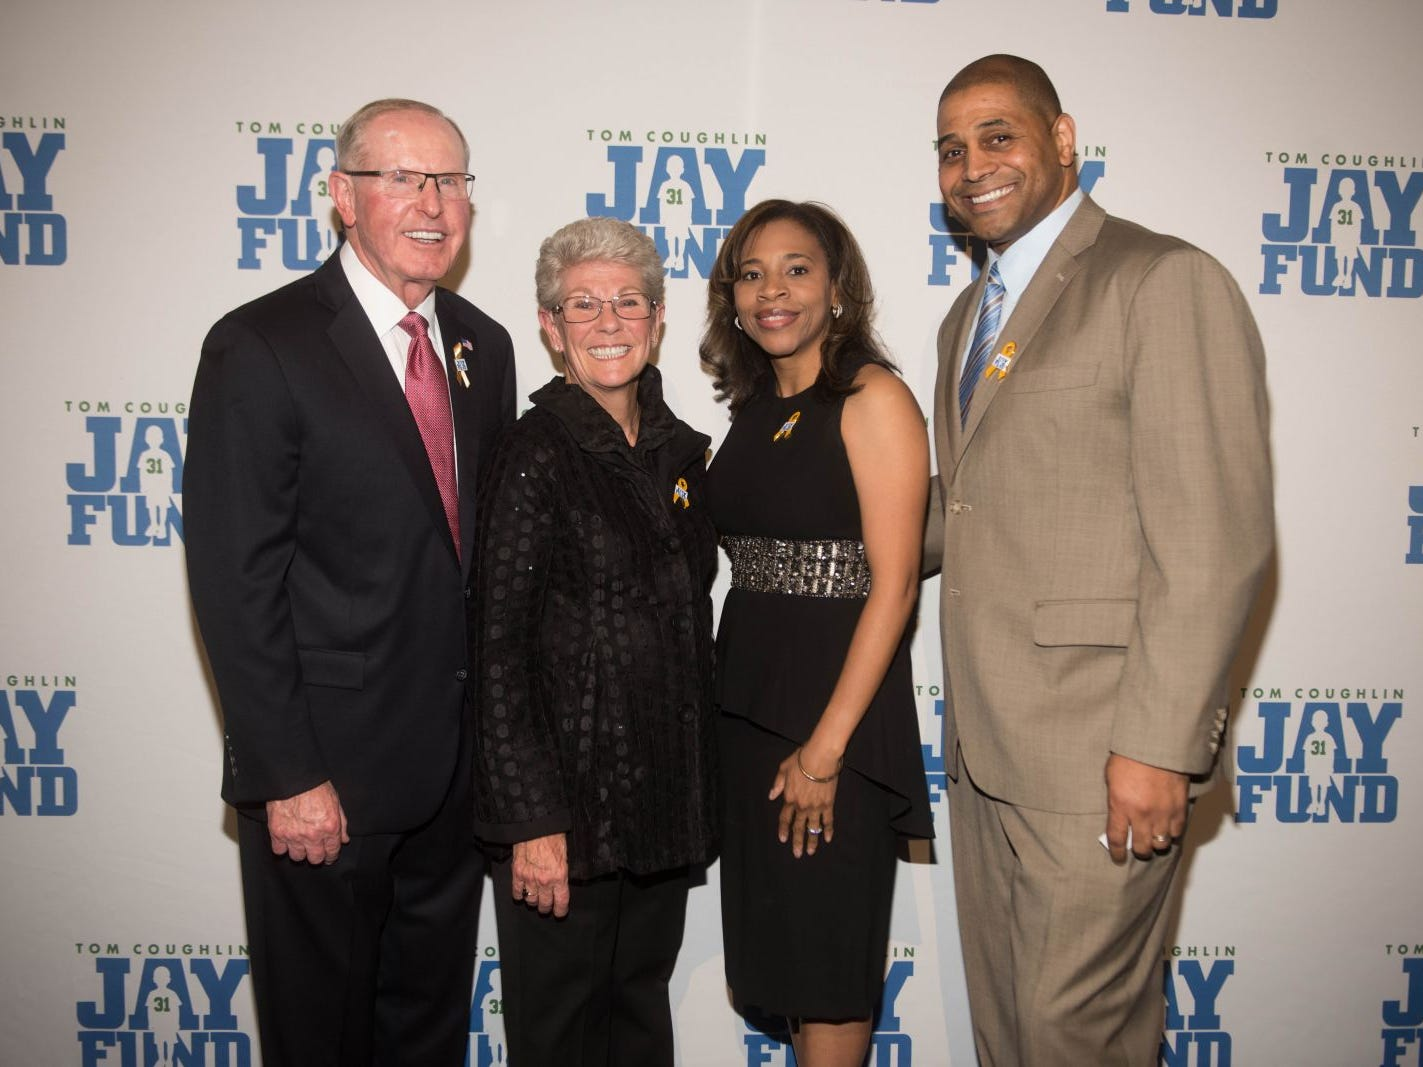 Tom Coughlin, Judy Coughlin, Tahesha Way and Charles Way. The 14th annual Jay Fund Champions for Children Gala was held at Cipriani 42nd Street. 09/21/2018